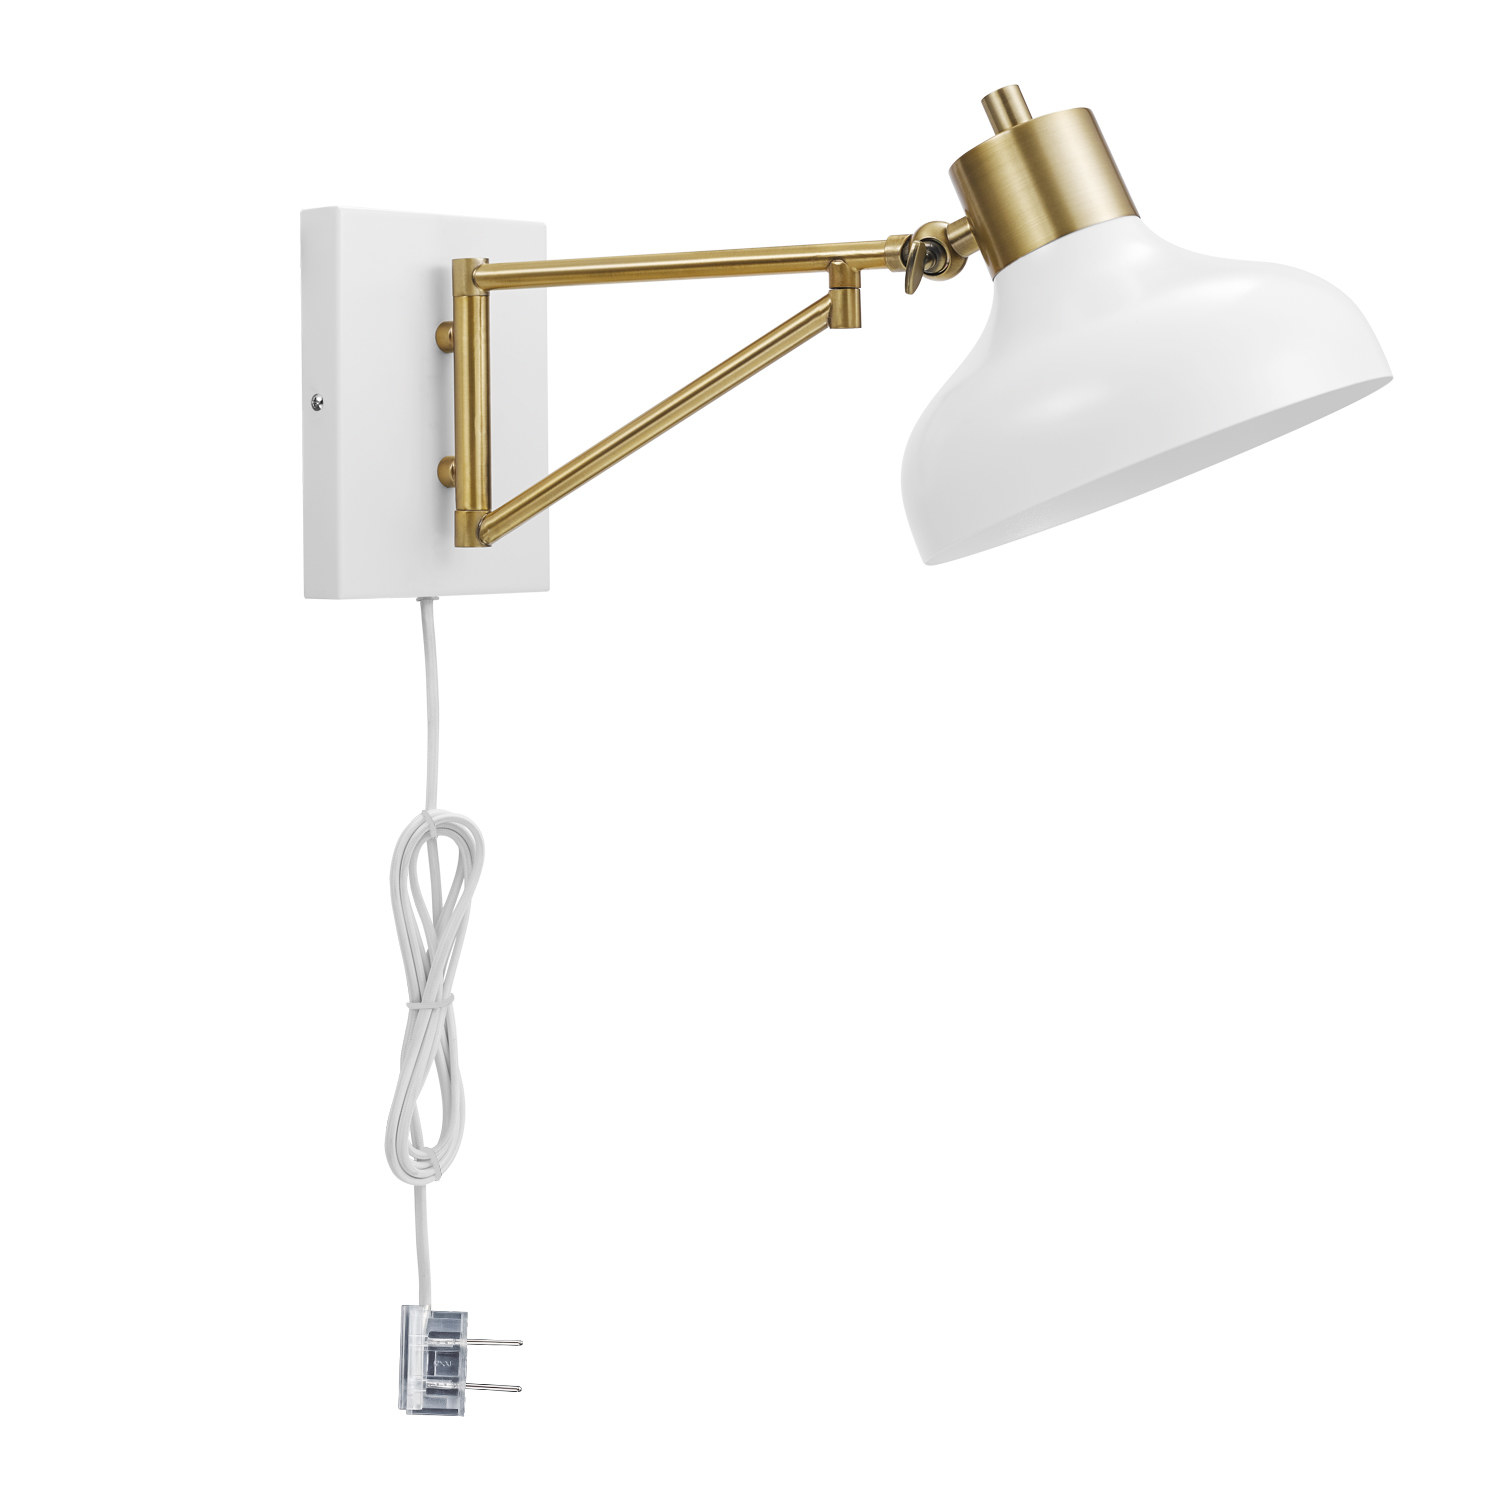 The sconce